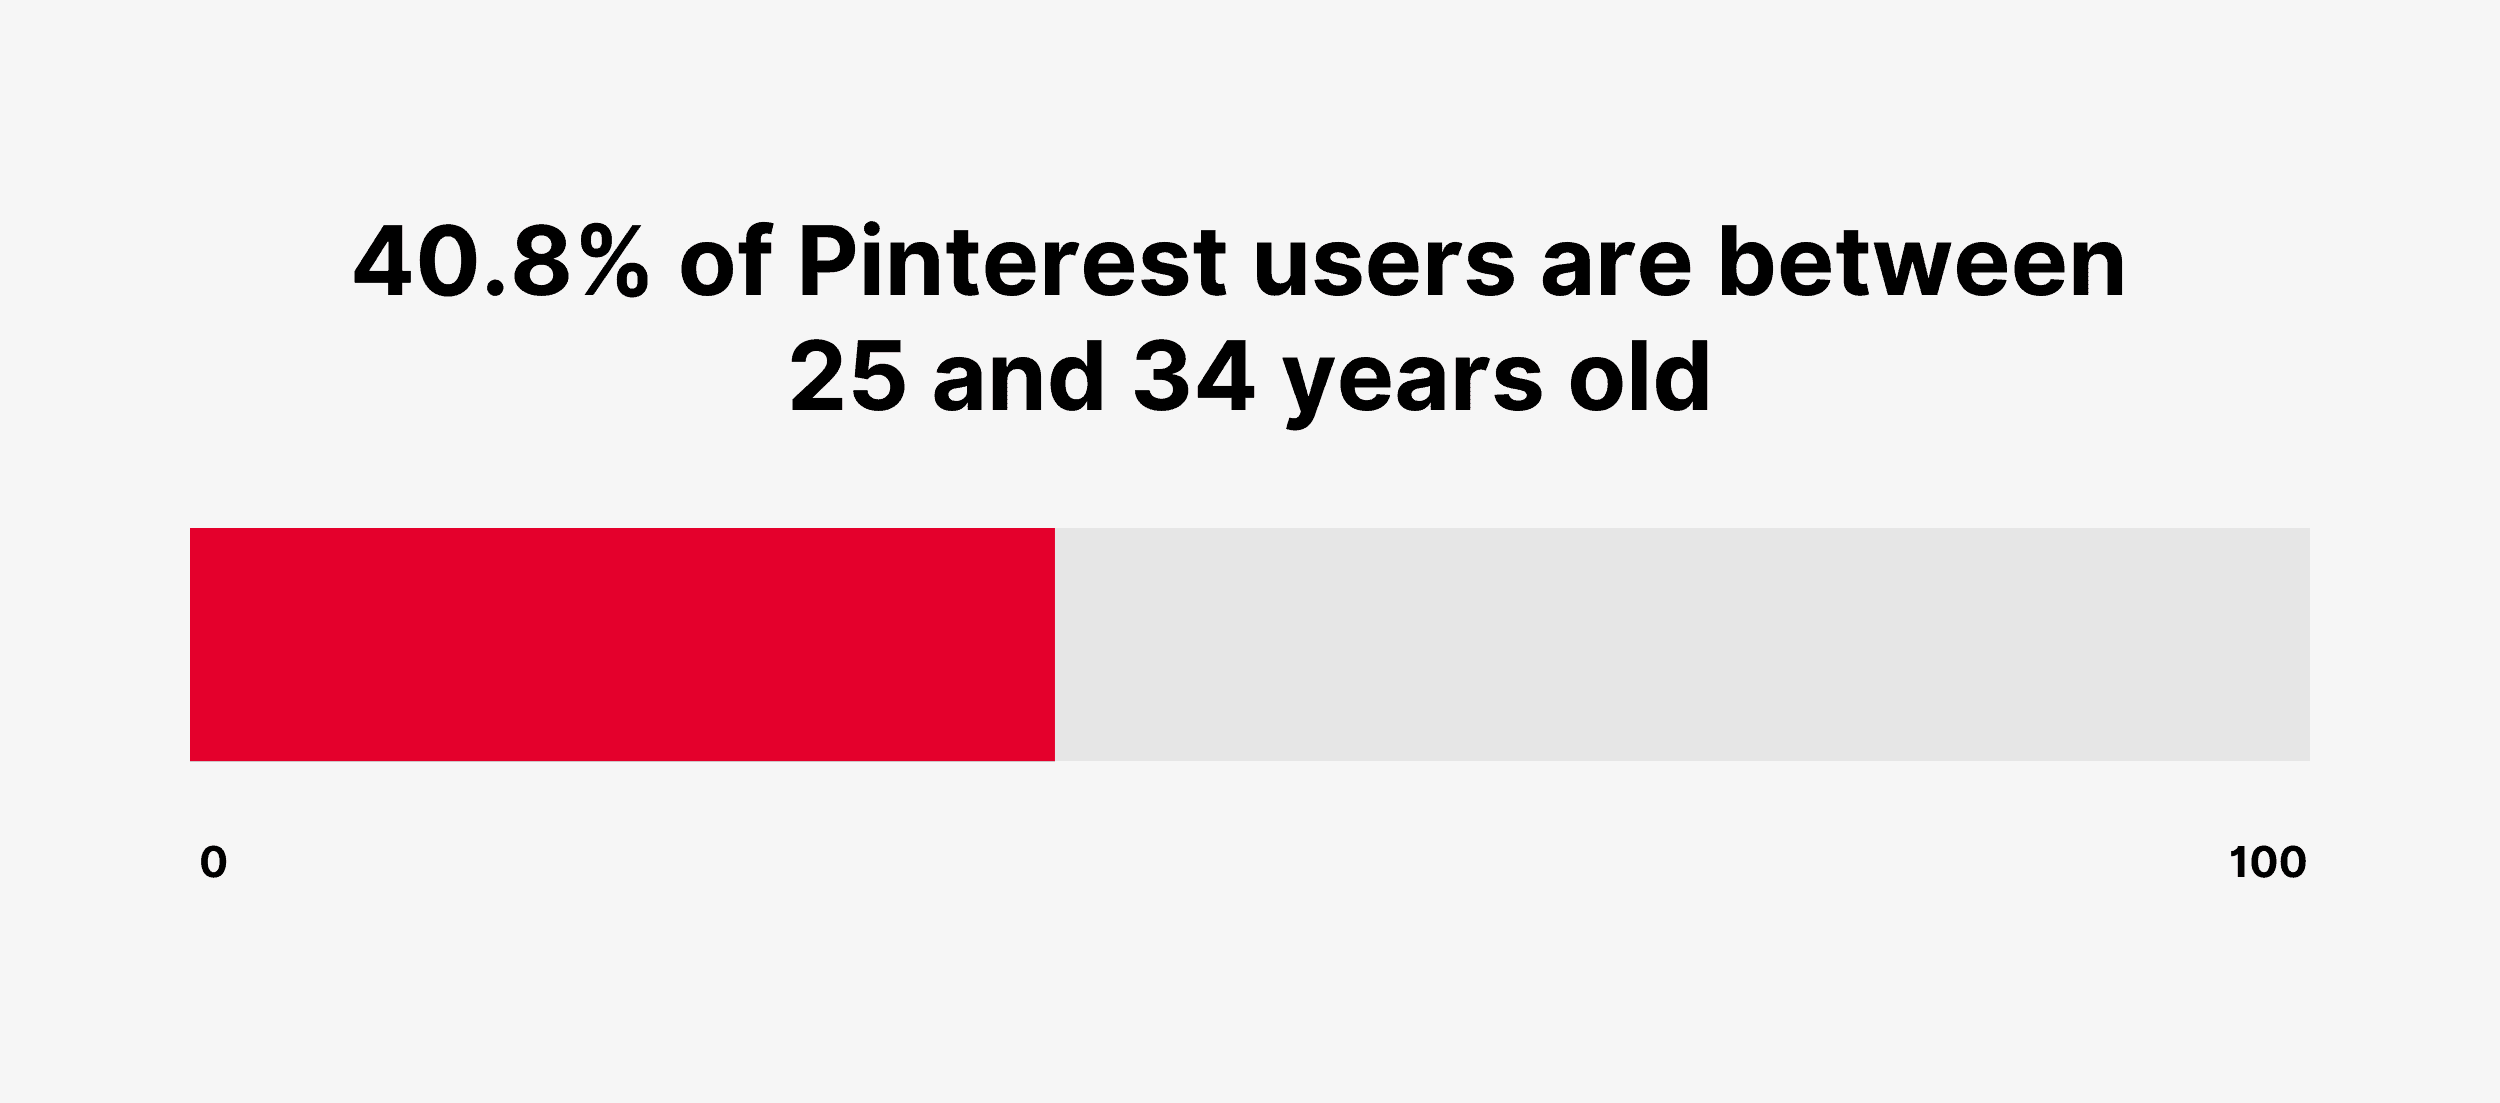 40.8% of Pinterest users are between 25 and 34 years old